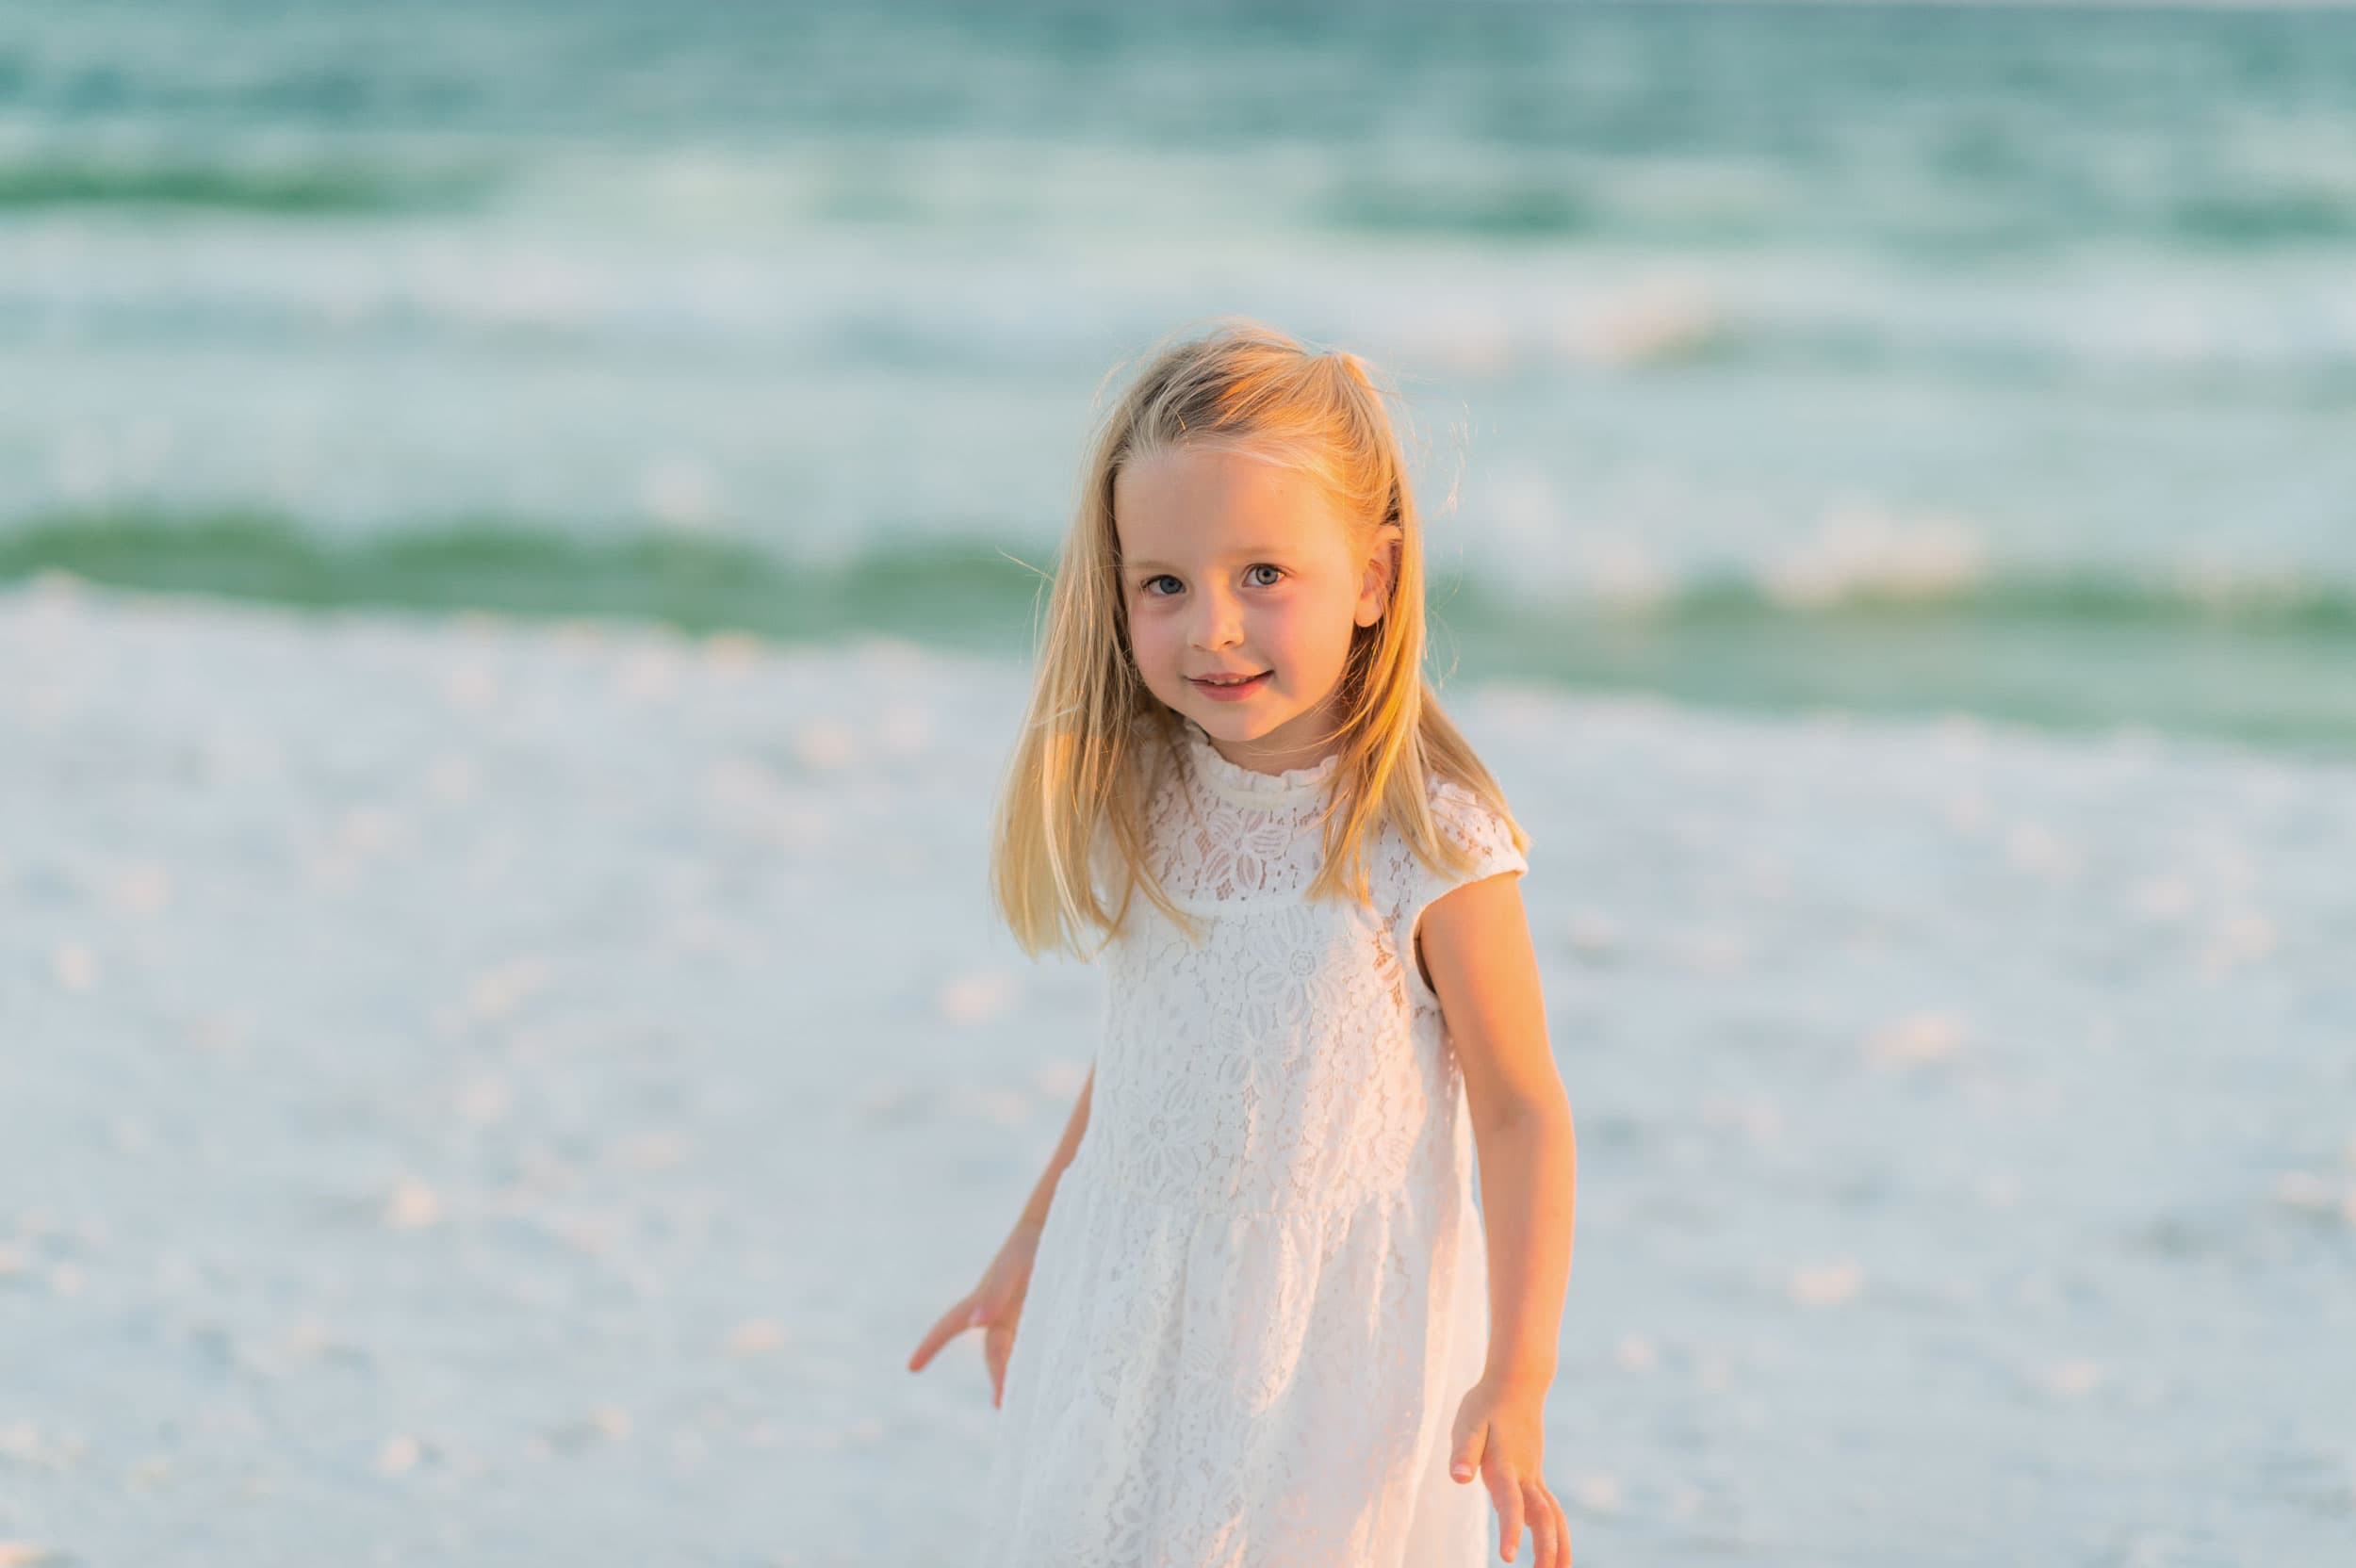 30 beach photographer captures child portrait